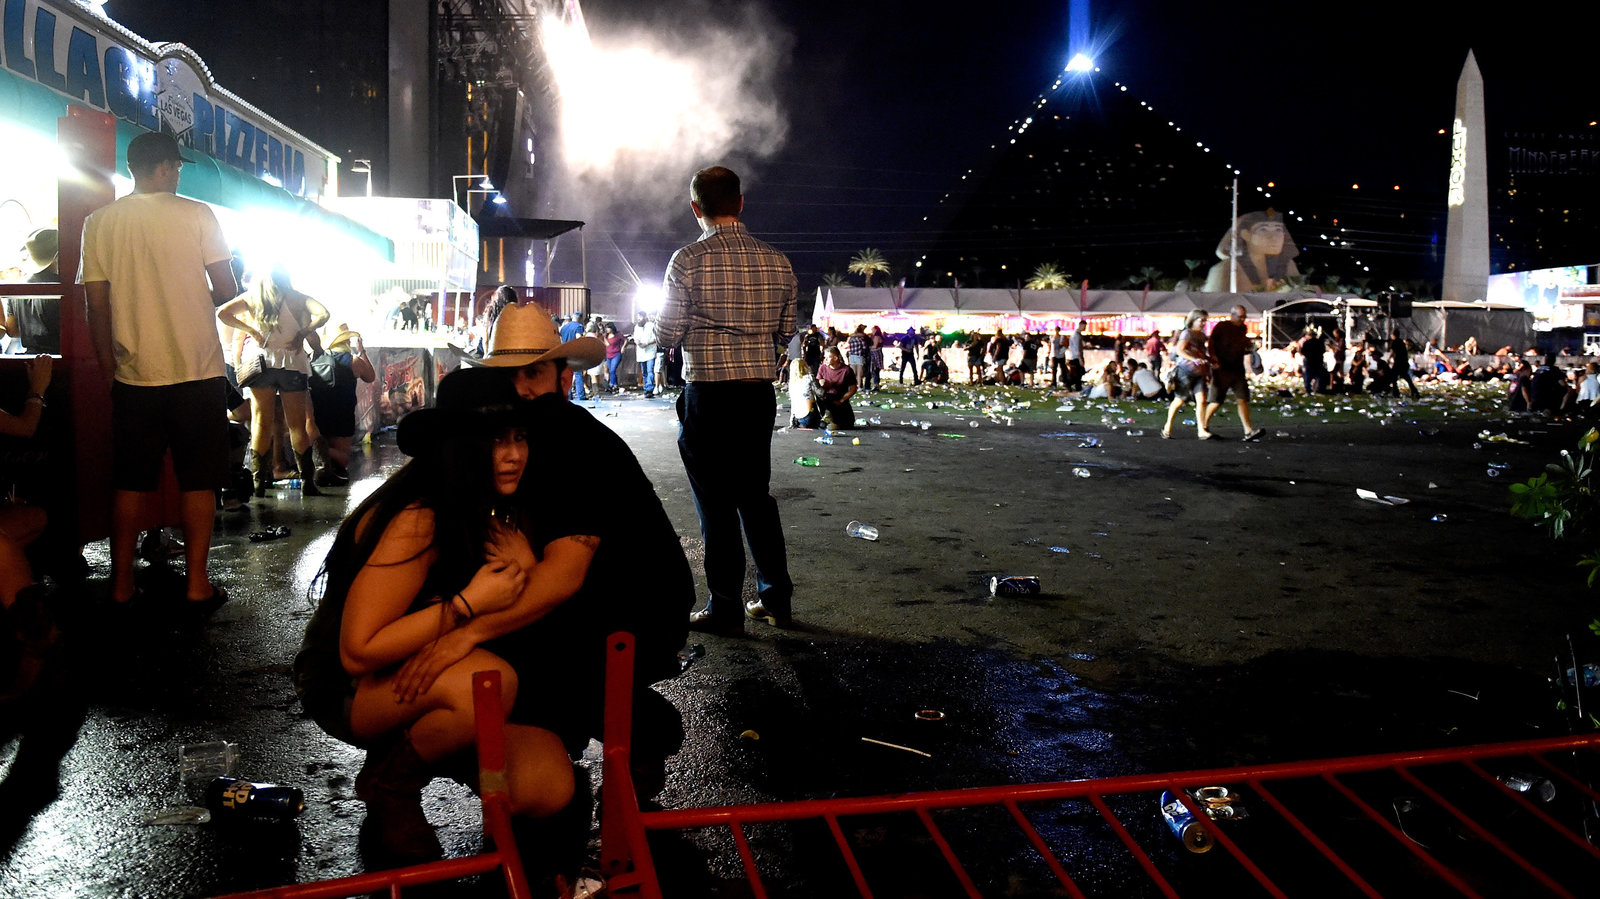 People take cover at the Route 91 Harvest festival after a gunman opened fire on the festival from a room in the Mandalay Bay Resort and Casino in Las Vegas. (David Becker/Getty Images)